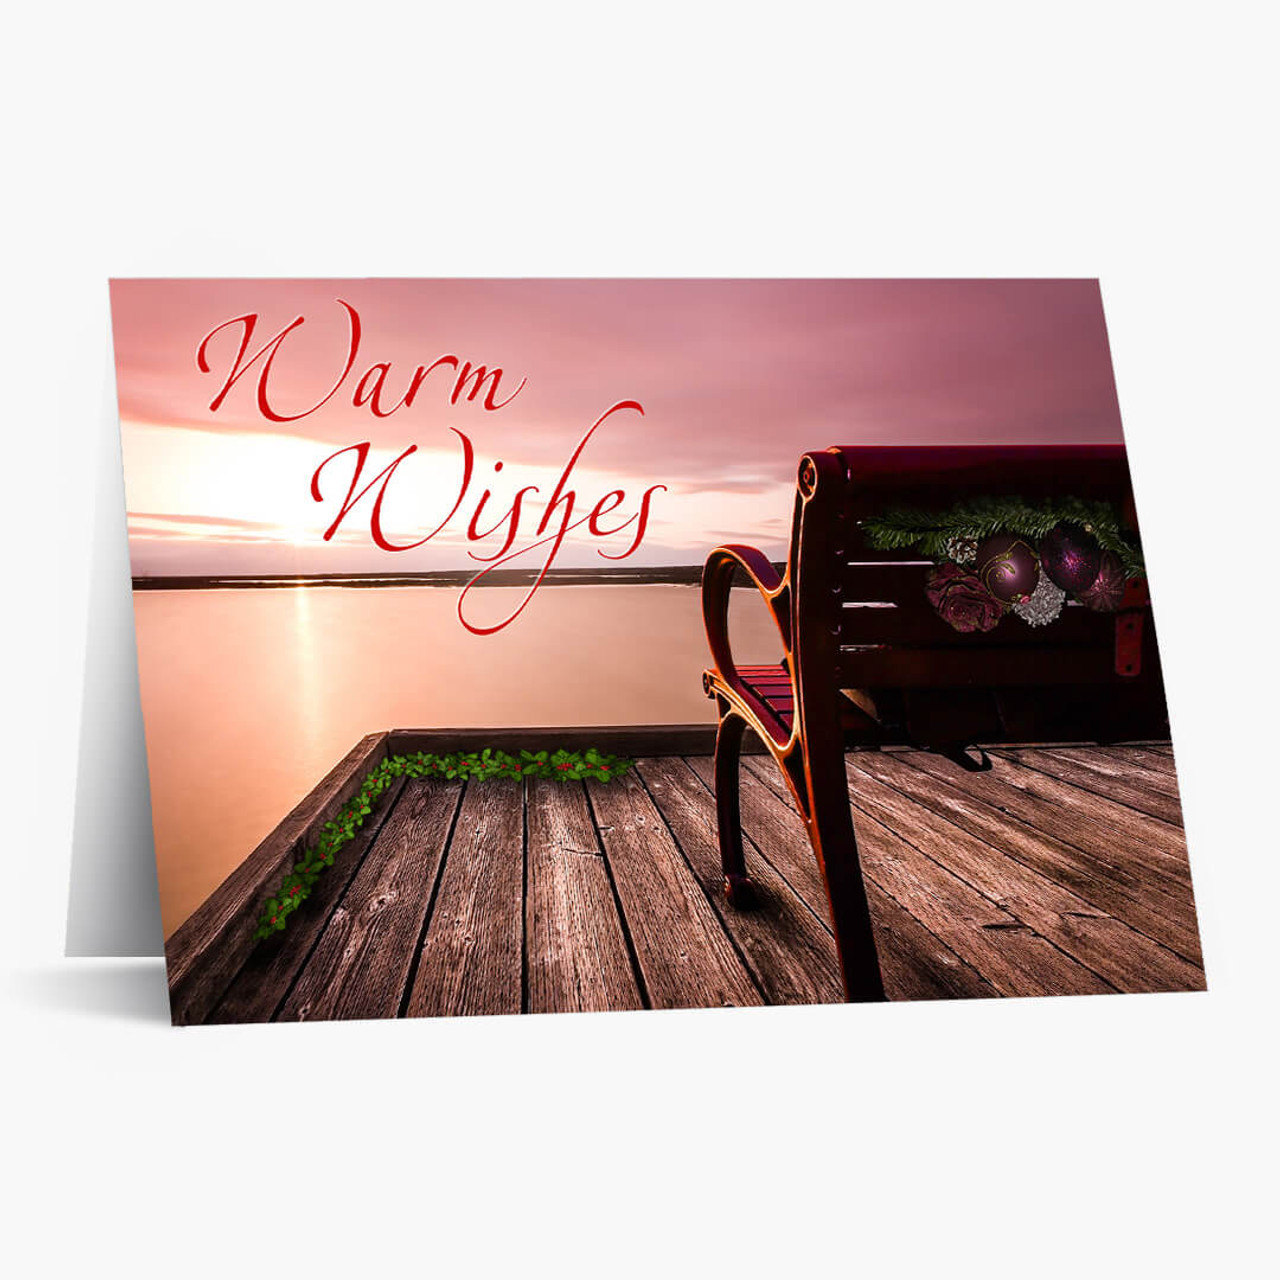 Warmest Wishes Christmas Card